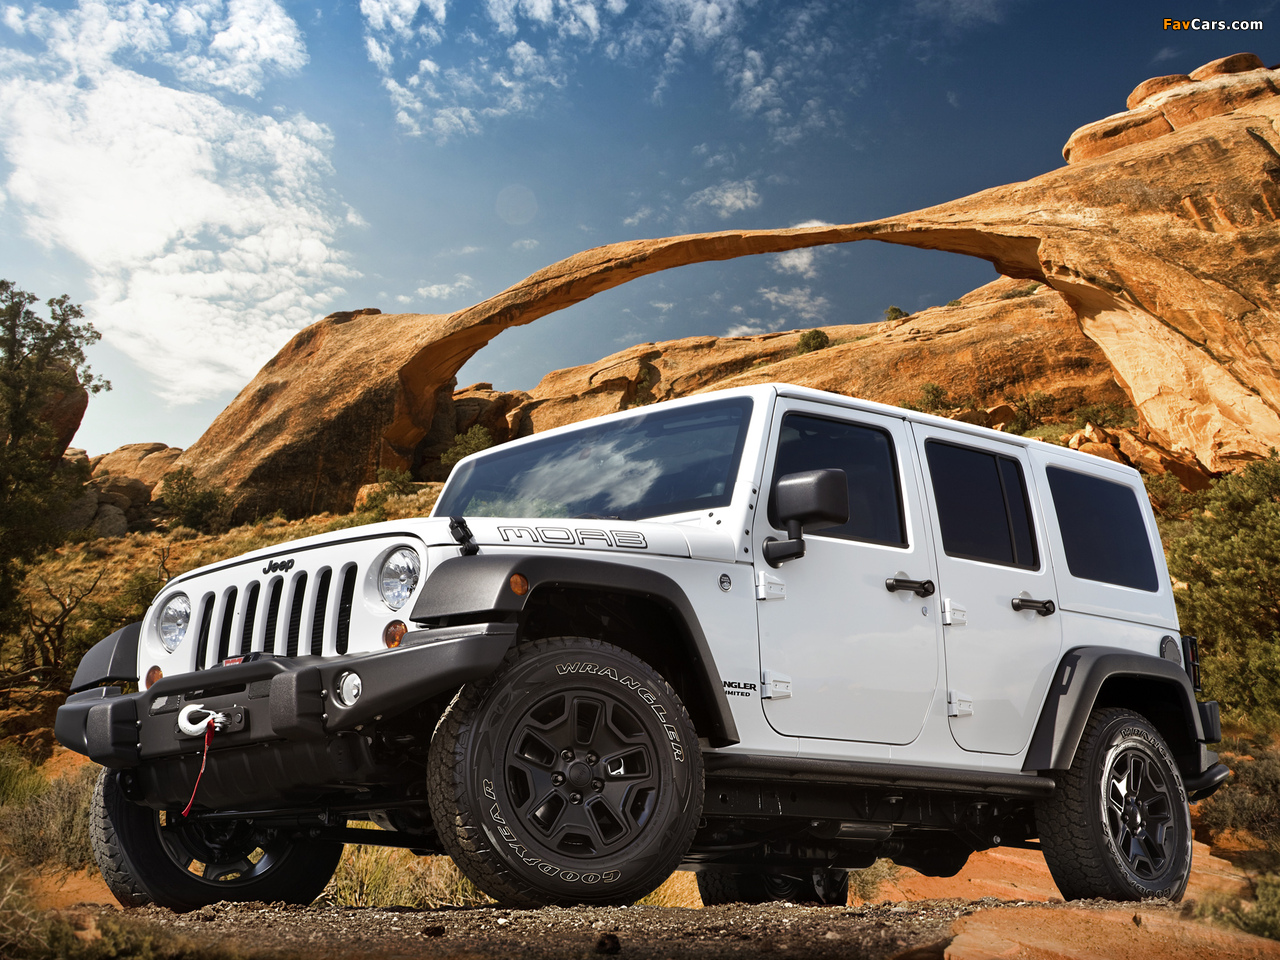 Jeep Wrangler Unlimited Moab (JK) 2012 wallpapers (1280 x 960)